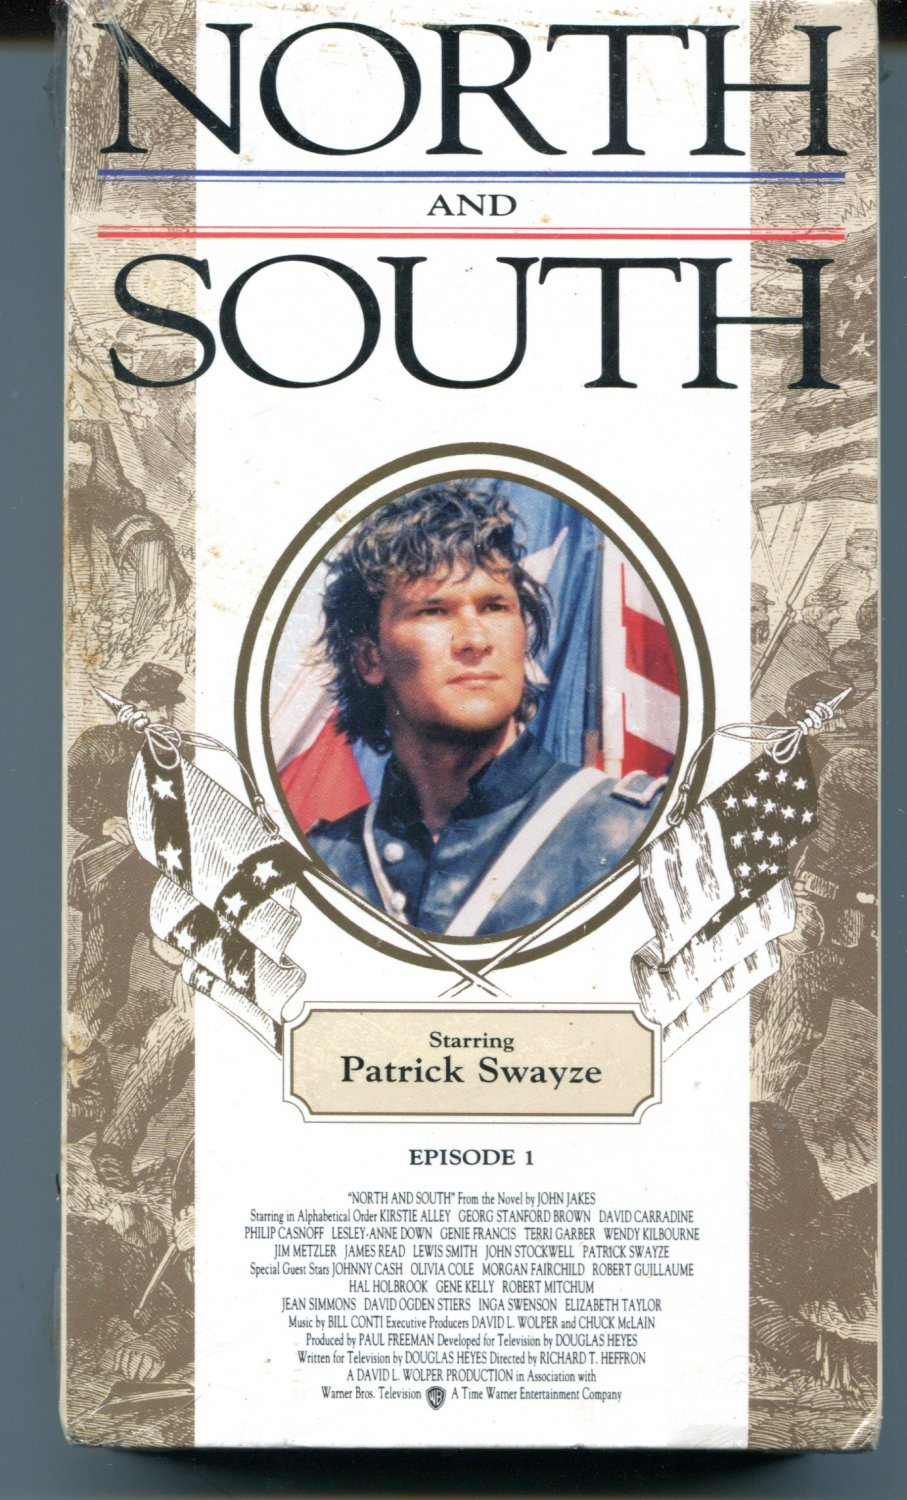 North and South Episode 1